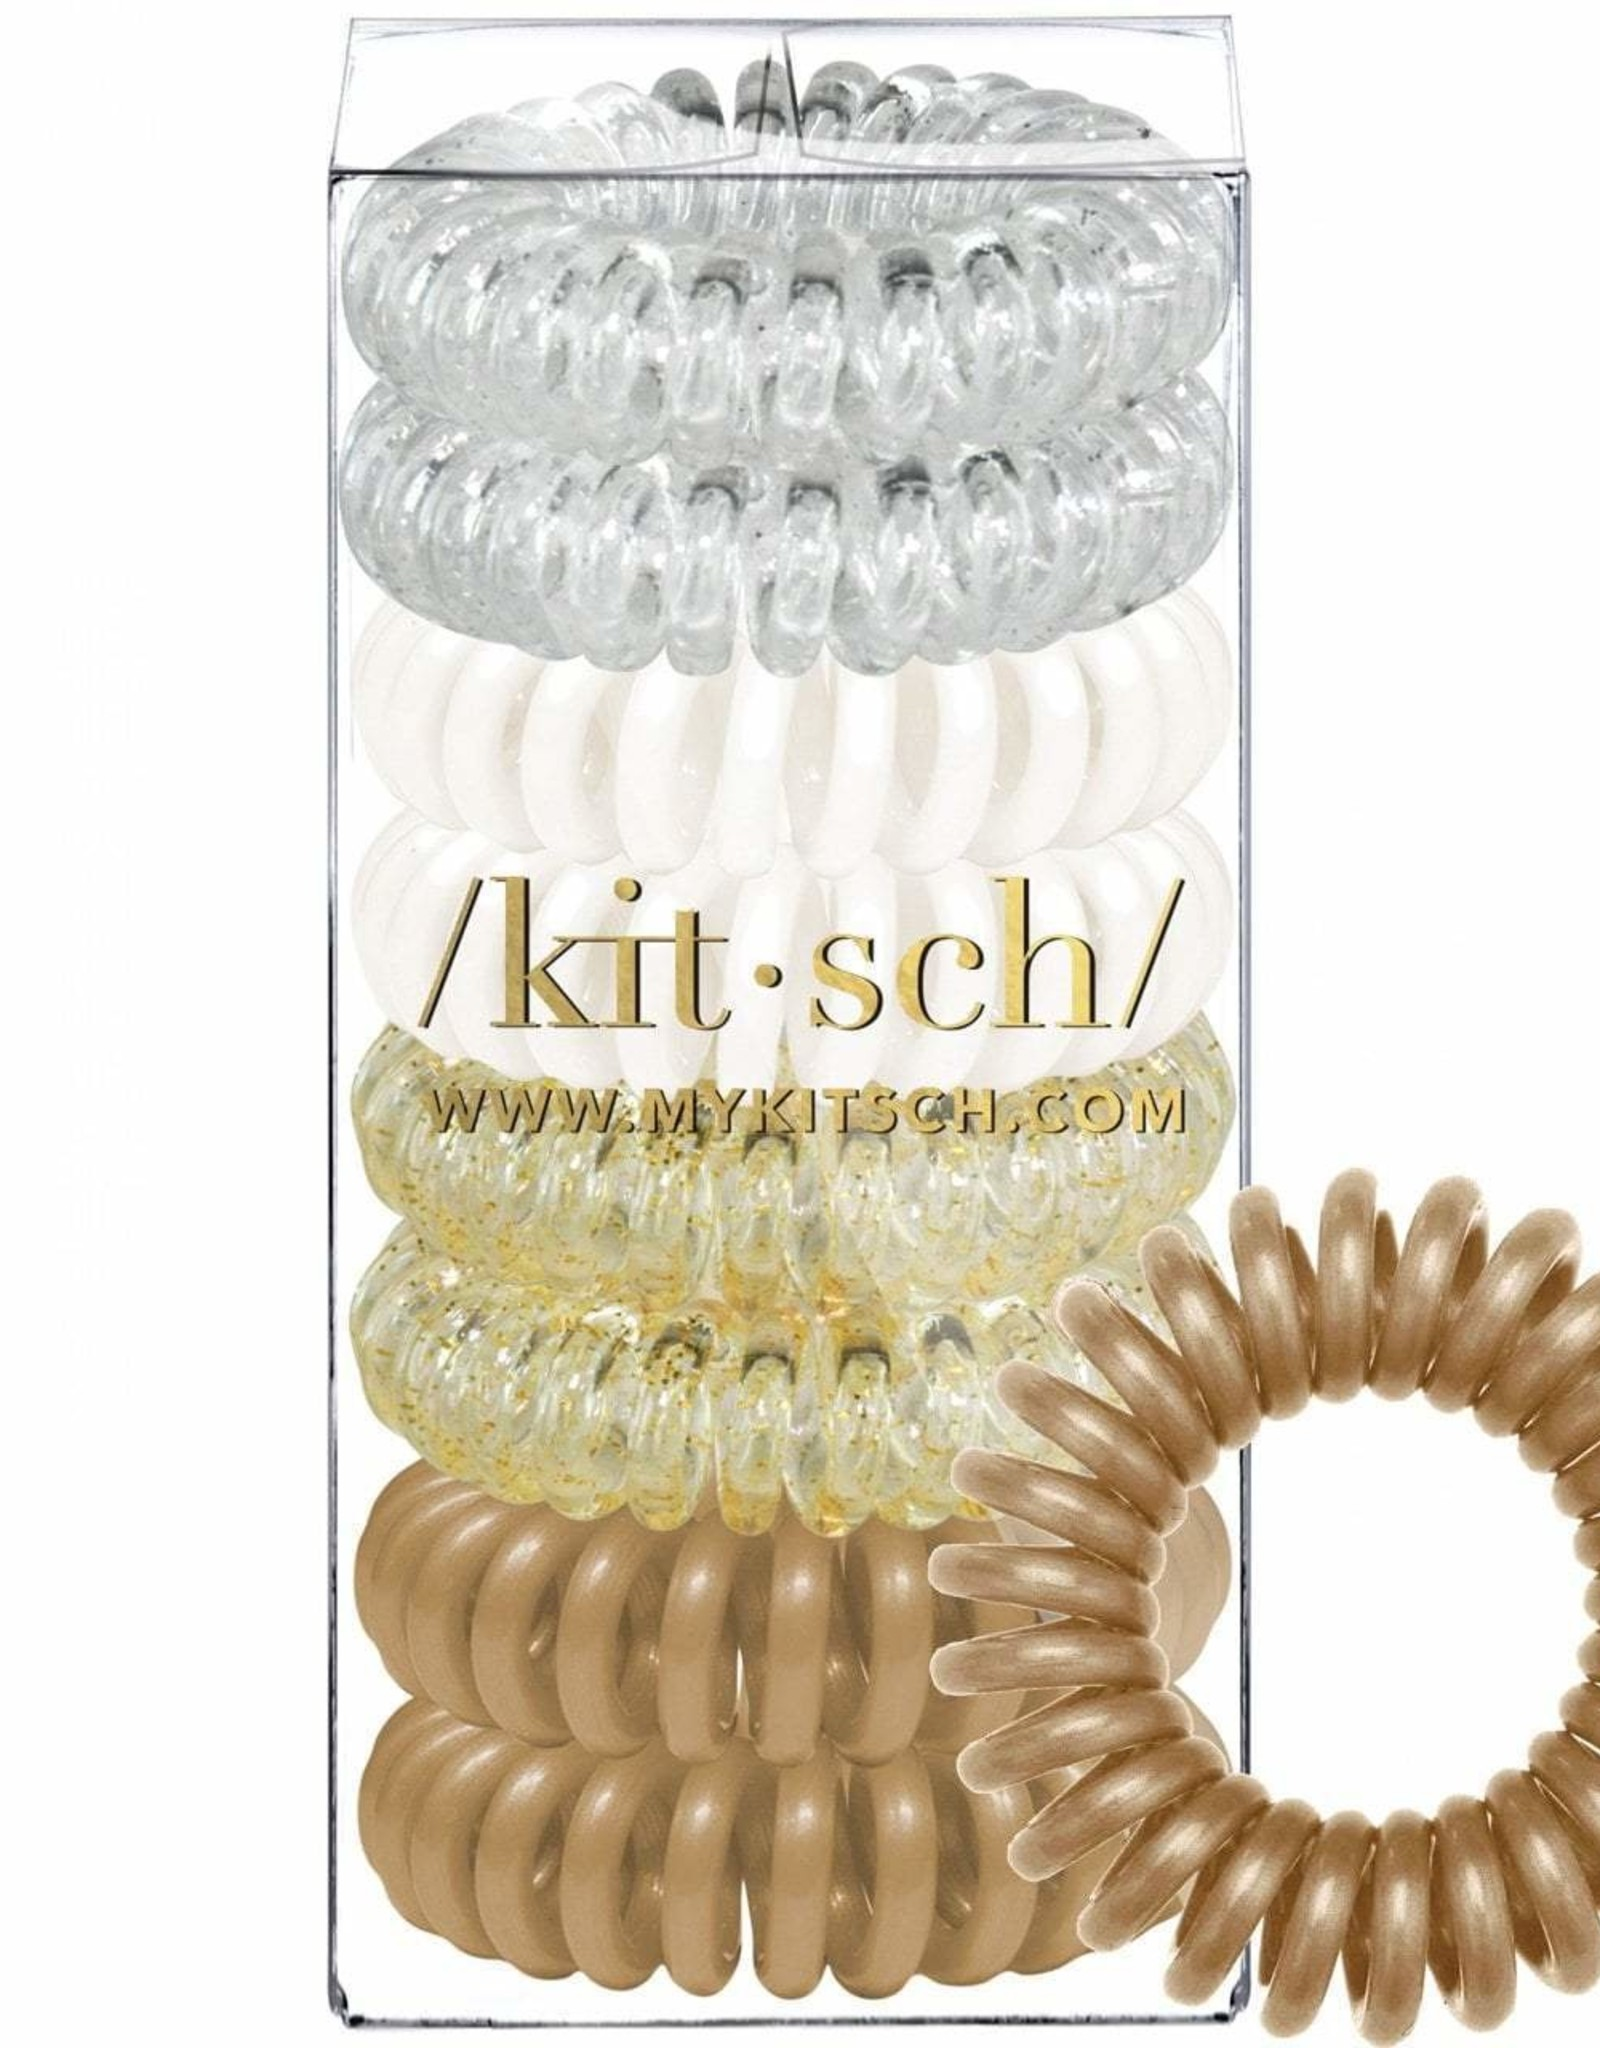 Kitsch Hair Coils- 8 Pack